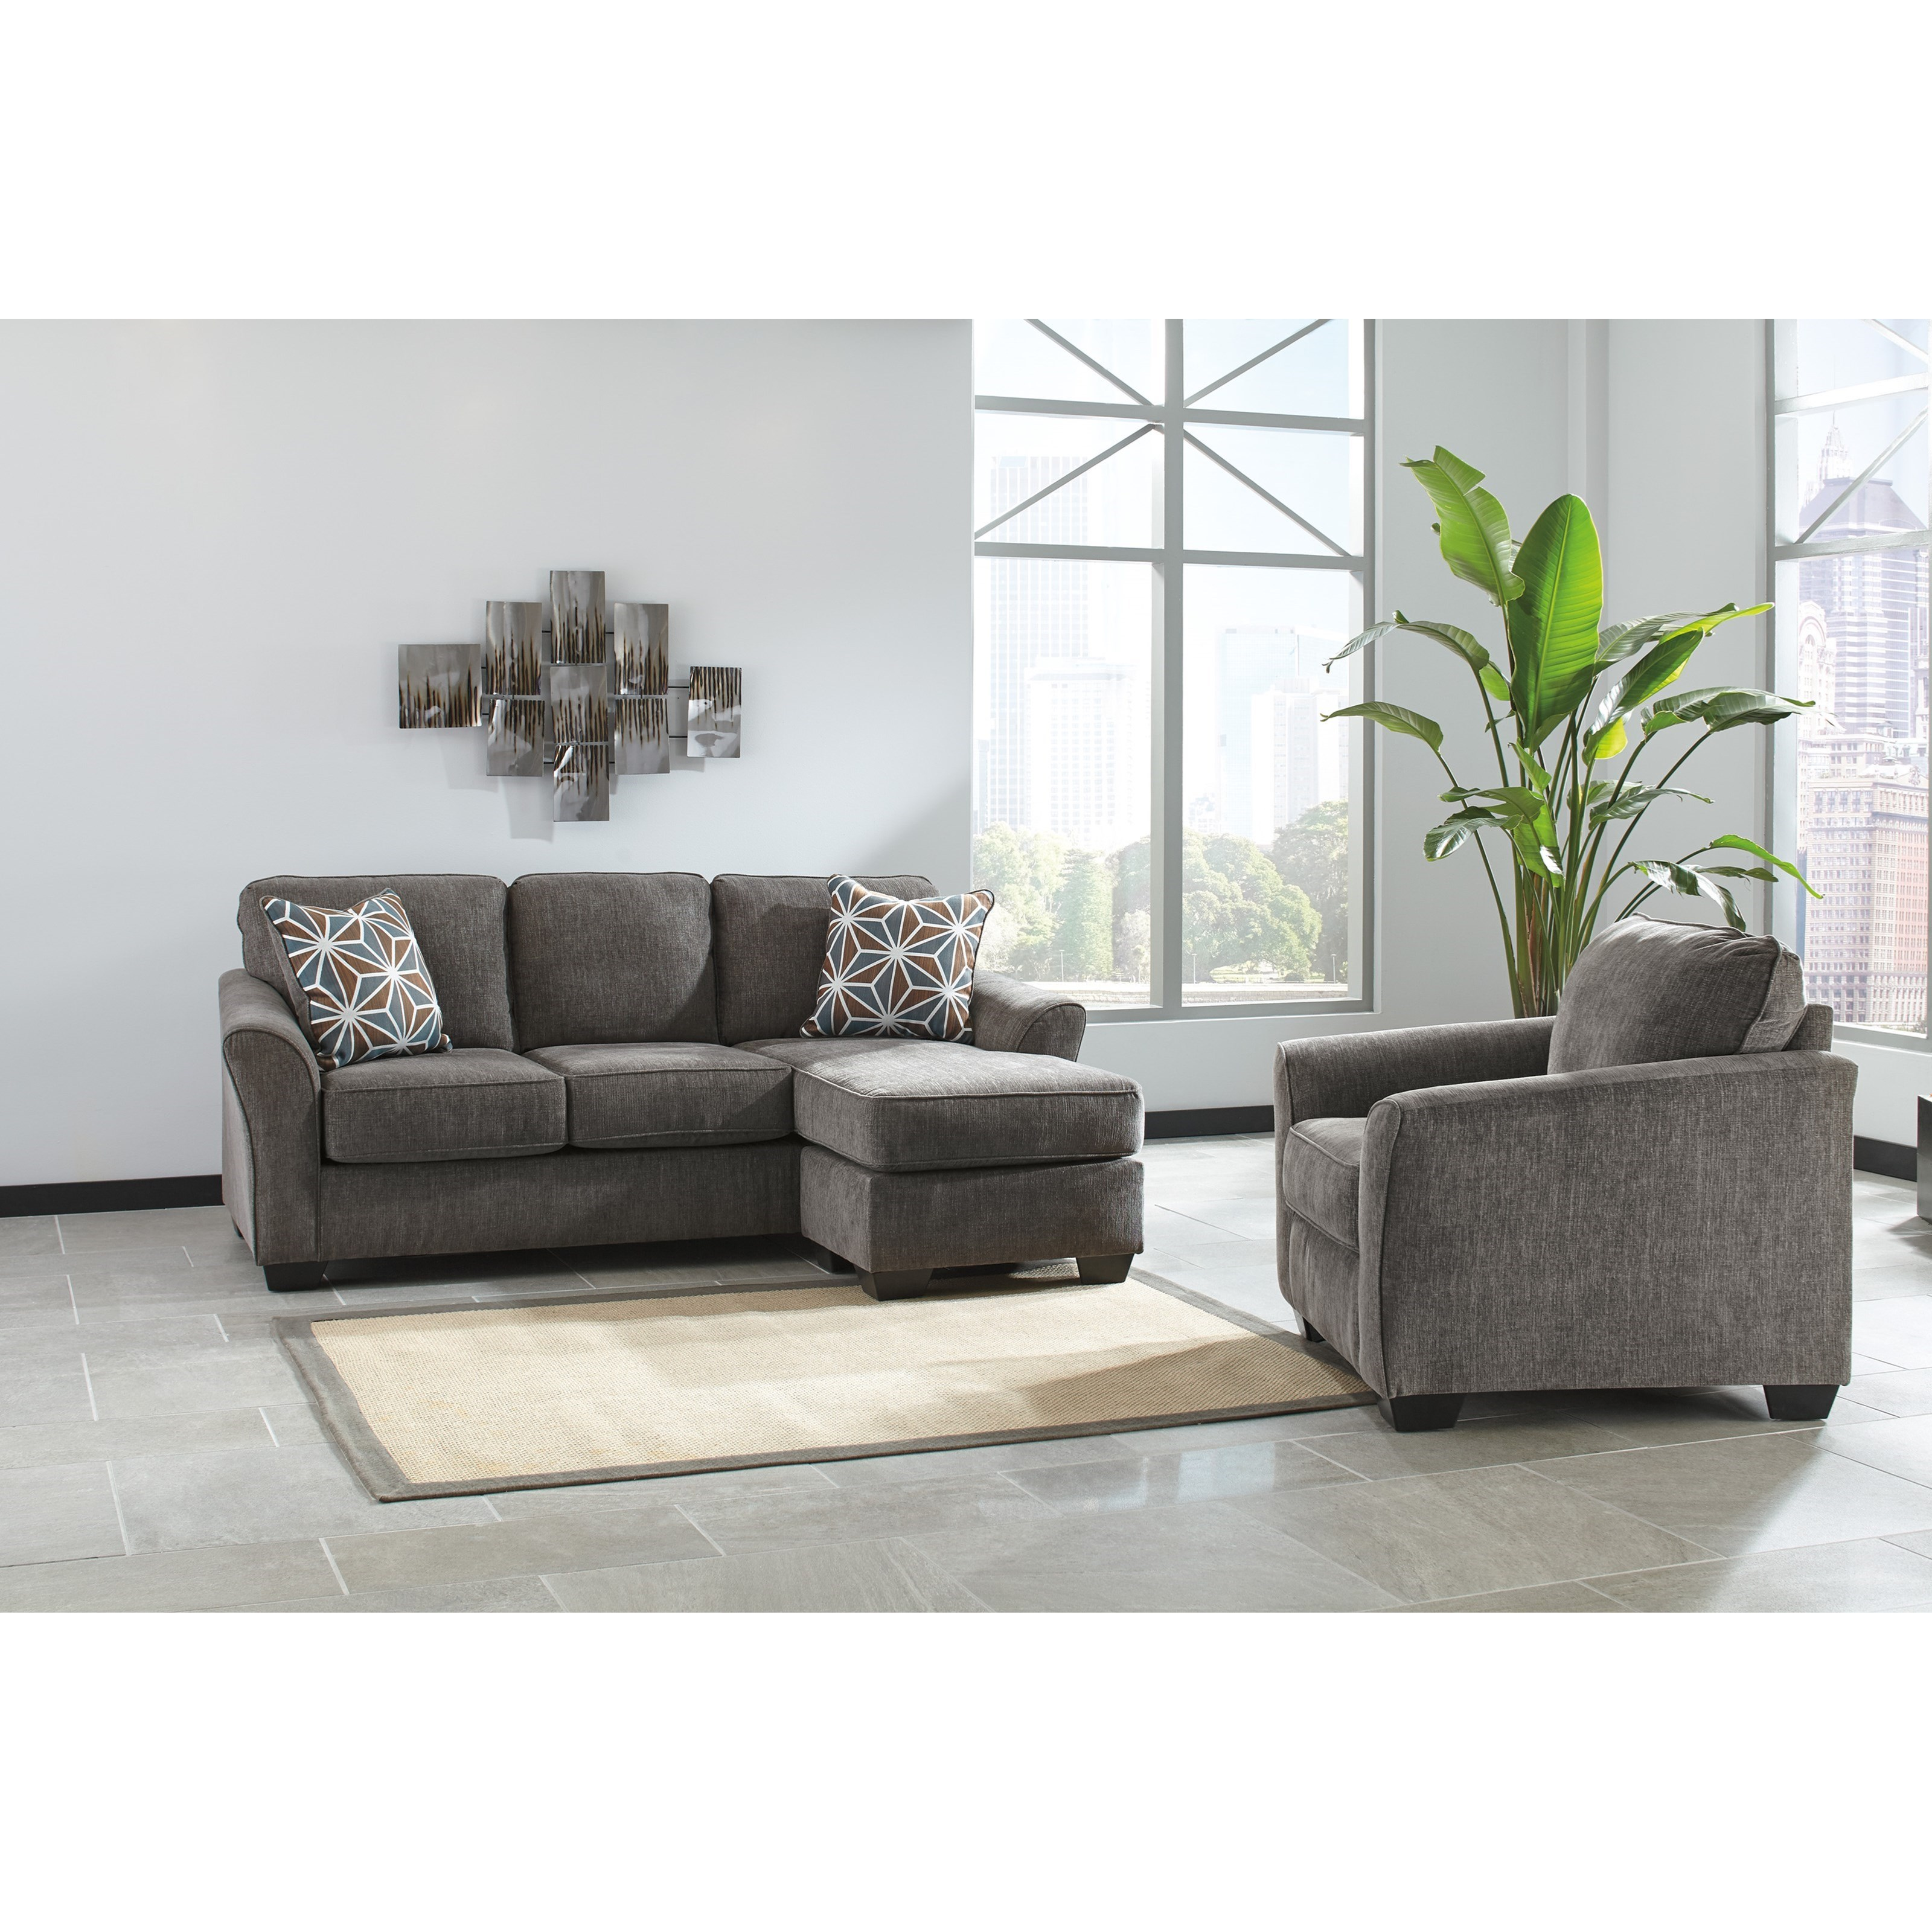 Brise Stationary Living Room Group by Benchcraft at Miller Waldrop Furniture and Decor